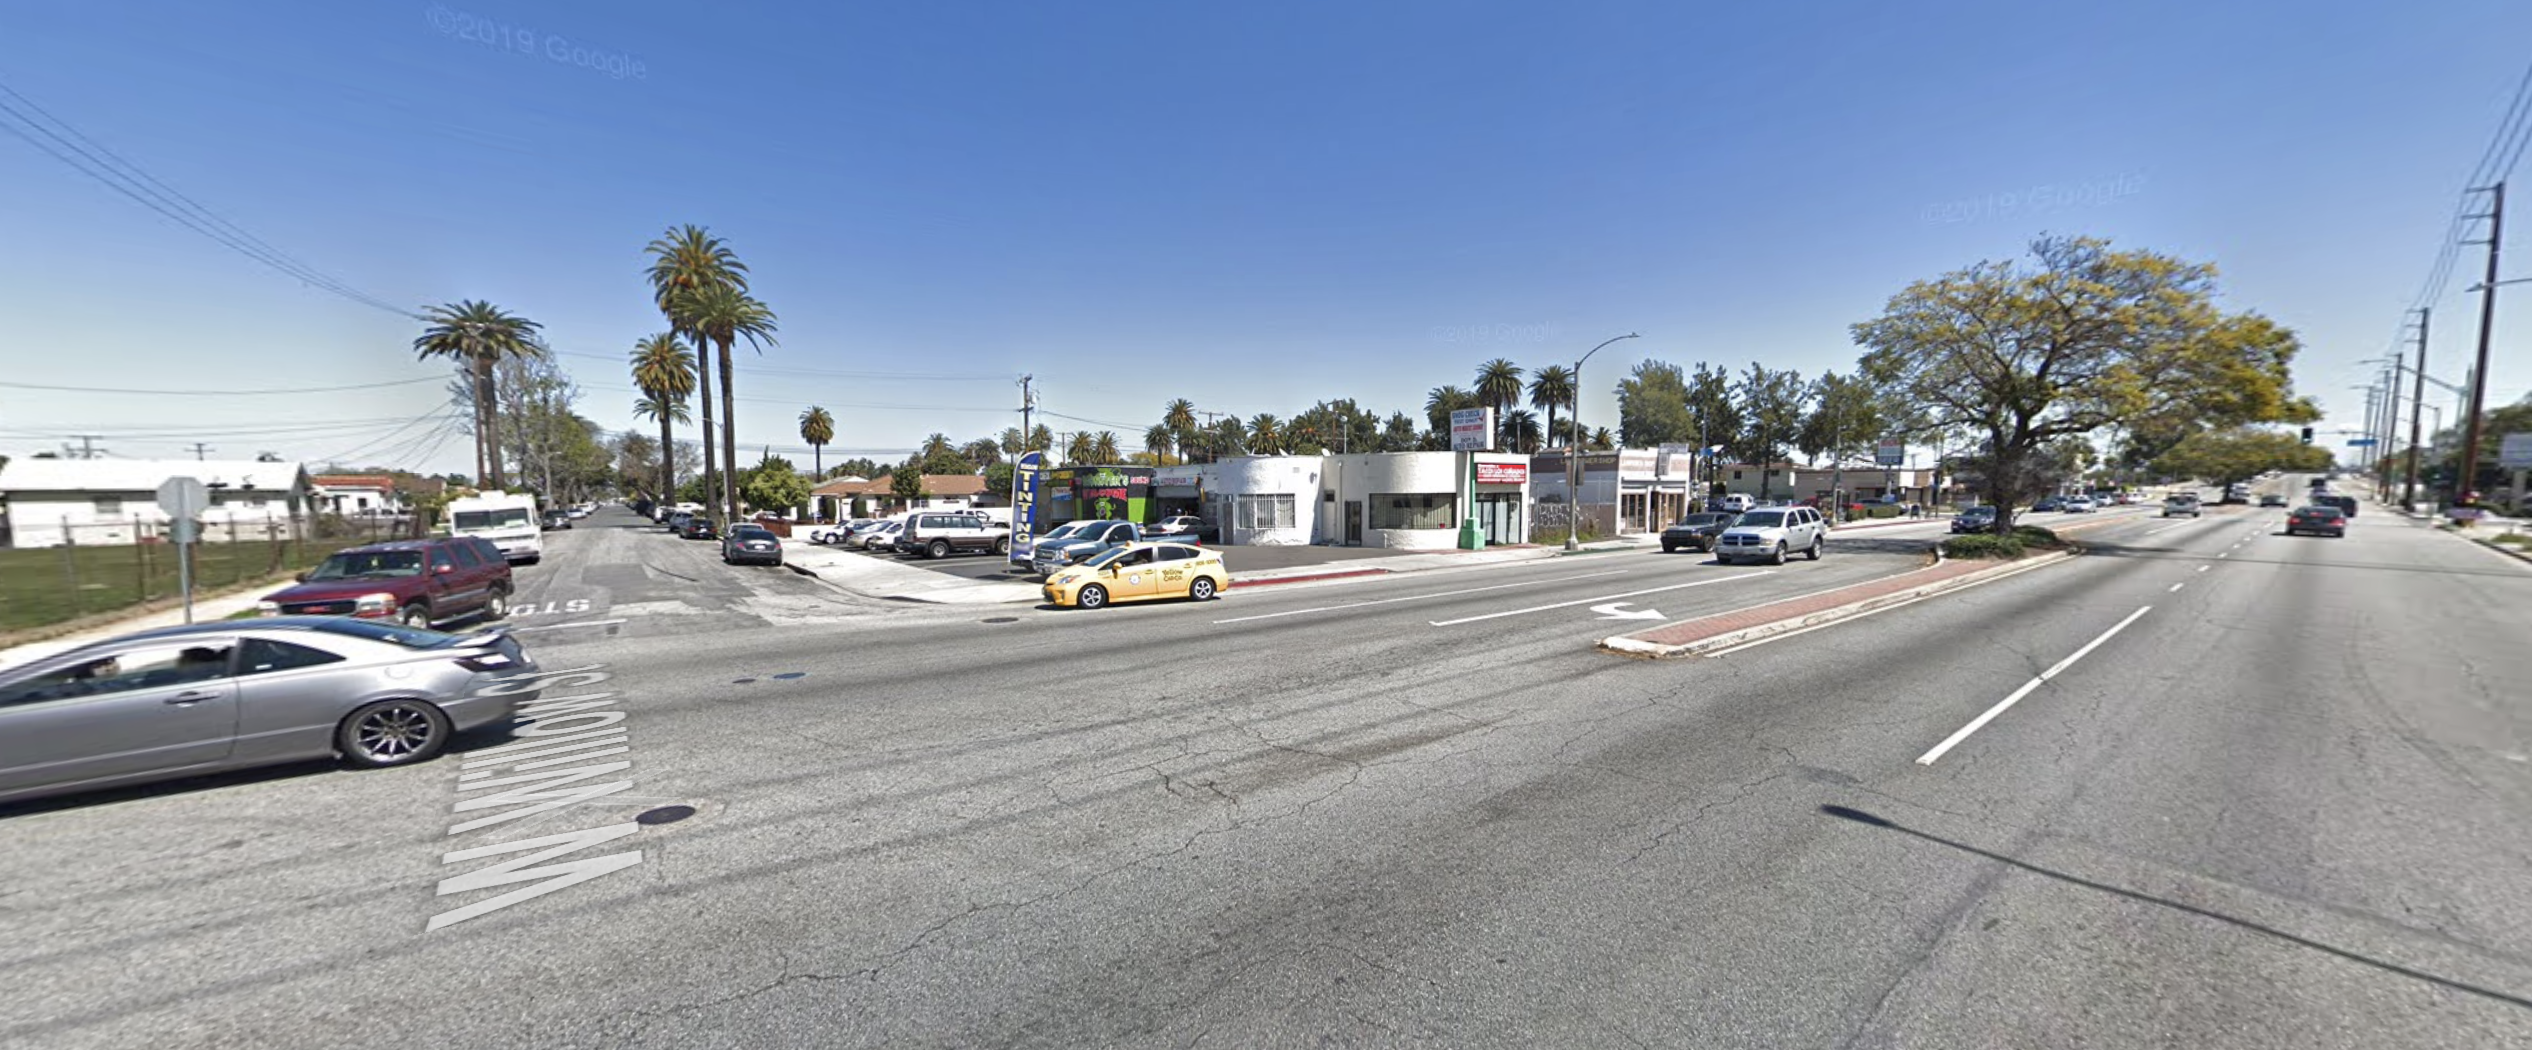 The area of Willow Street and Delta Avenue is seen in an undated photo from Google Maps street view.